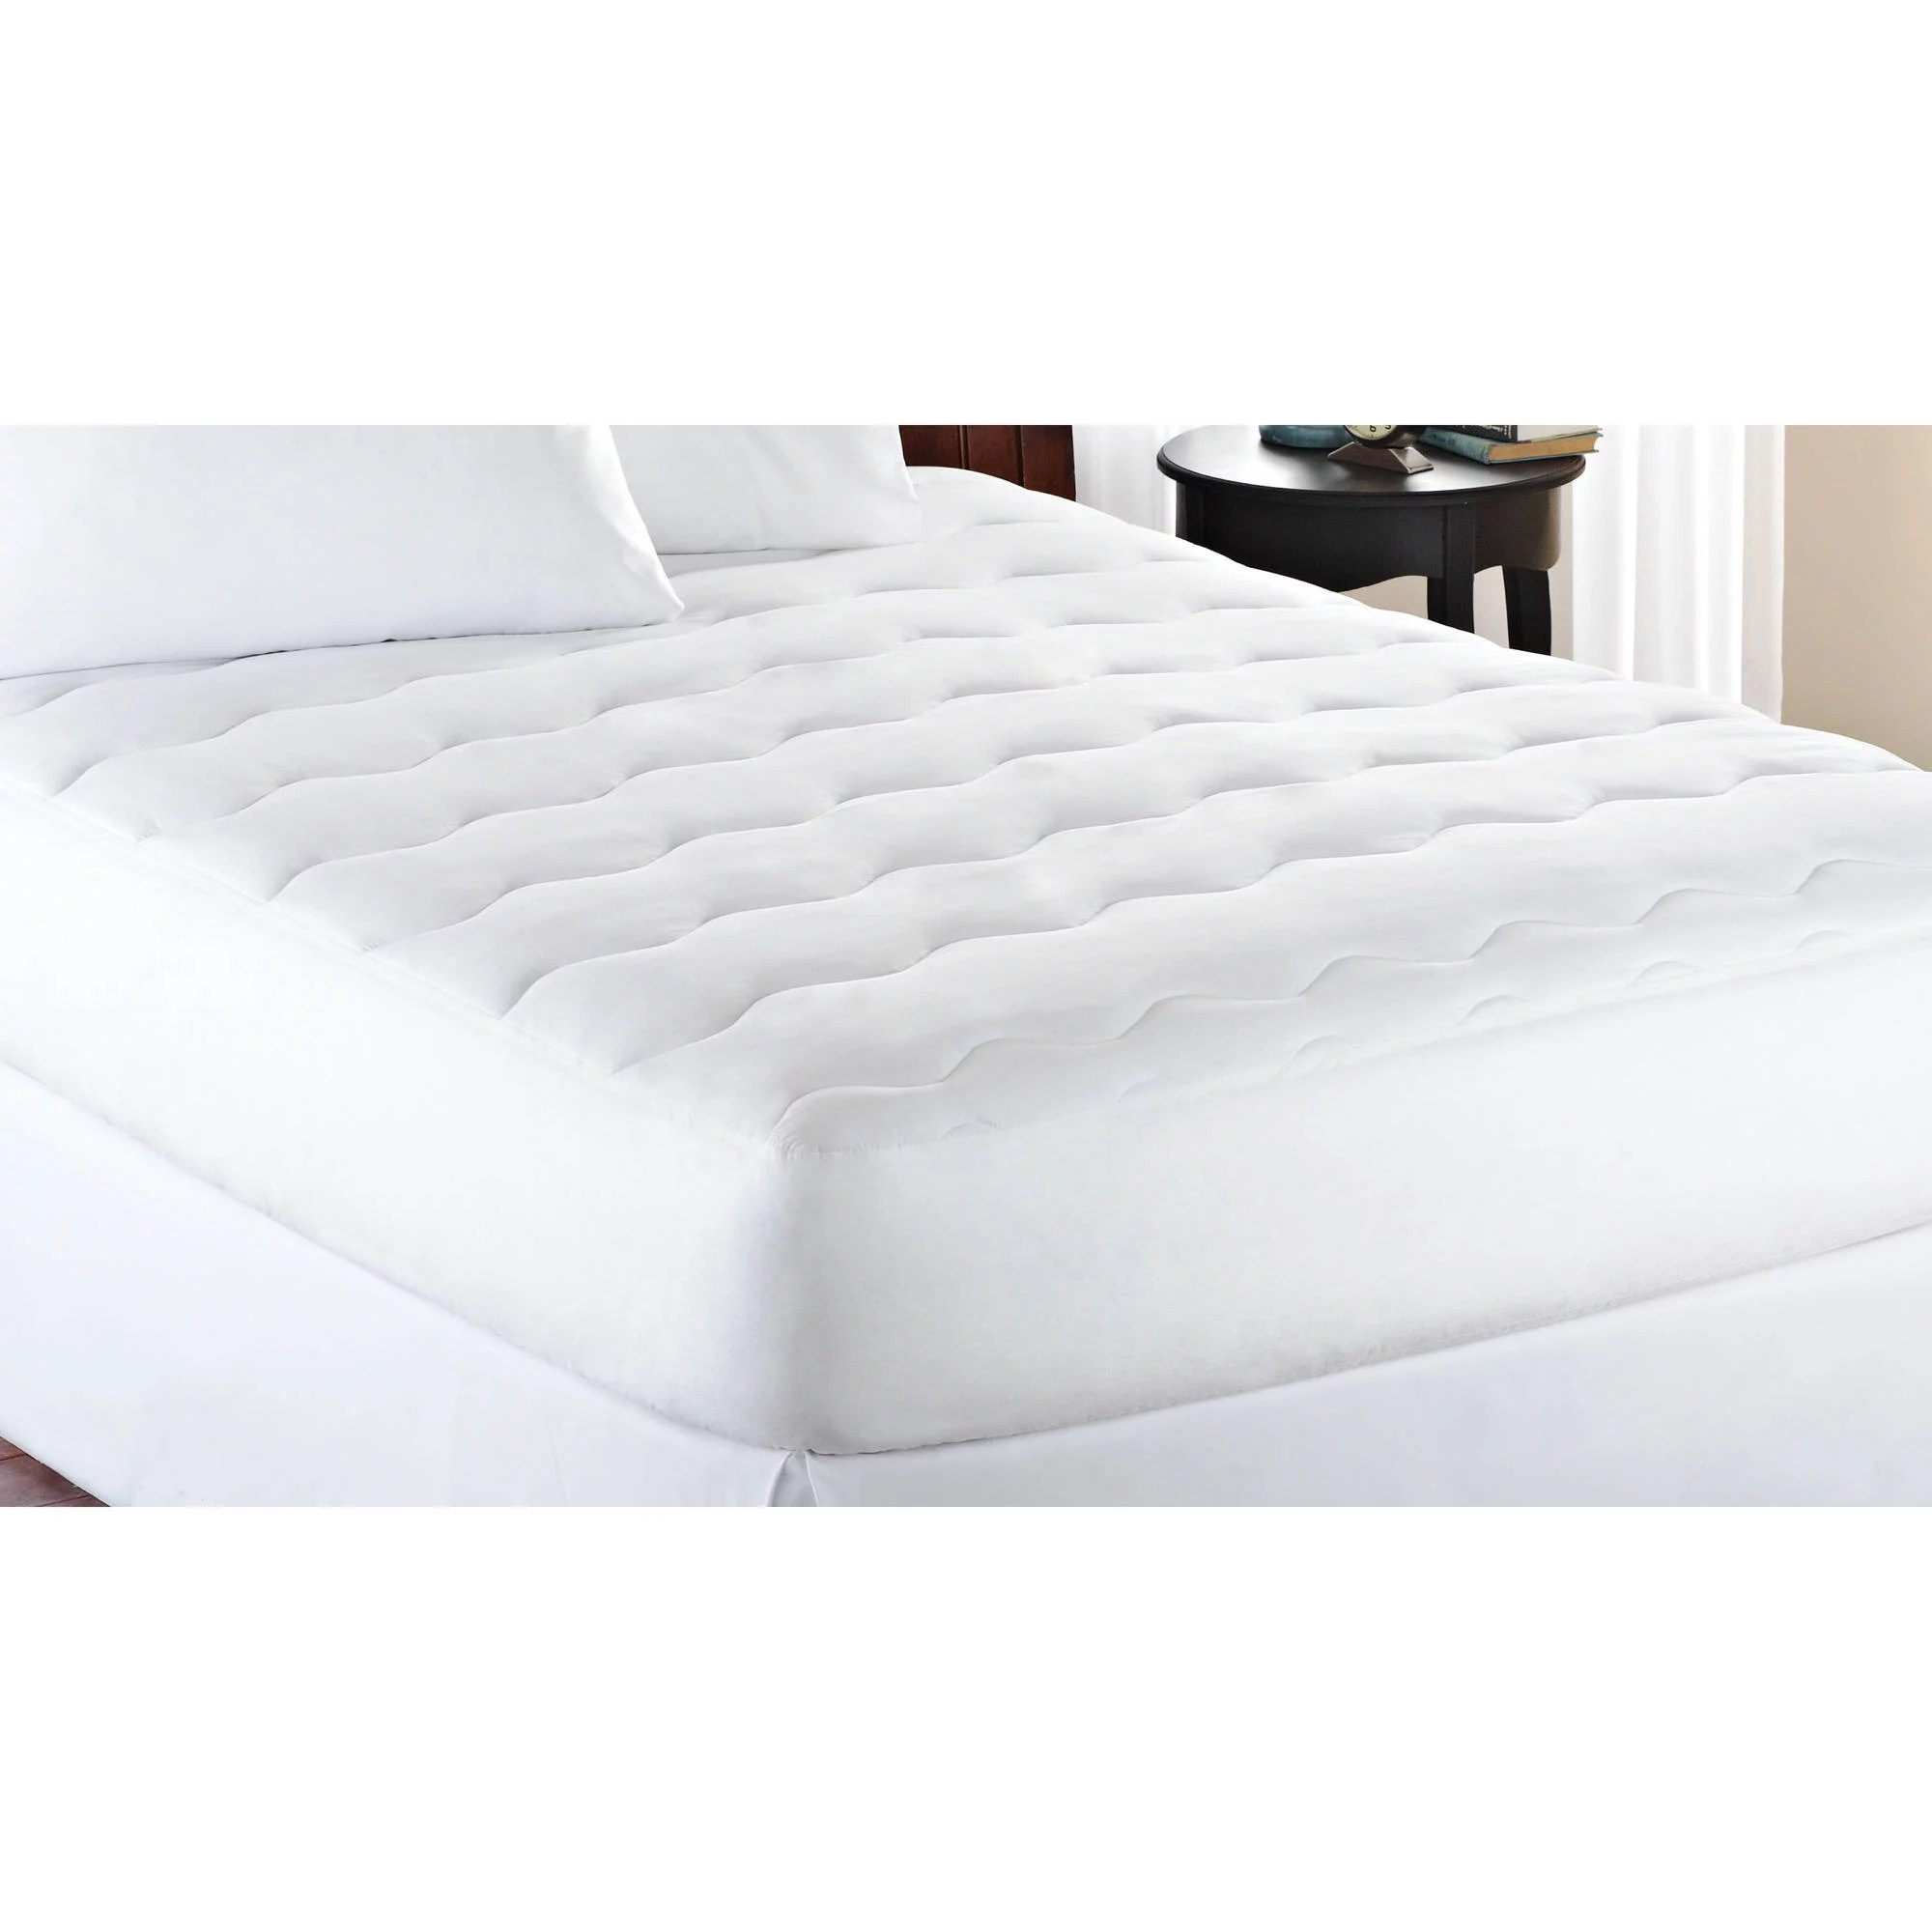 Double Bed Mattress Cover Mainstays 10 Ounce Fill Extra Thick Mattress Pad 1 Each